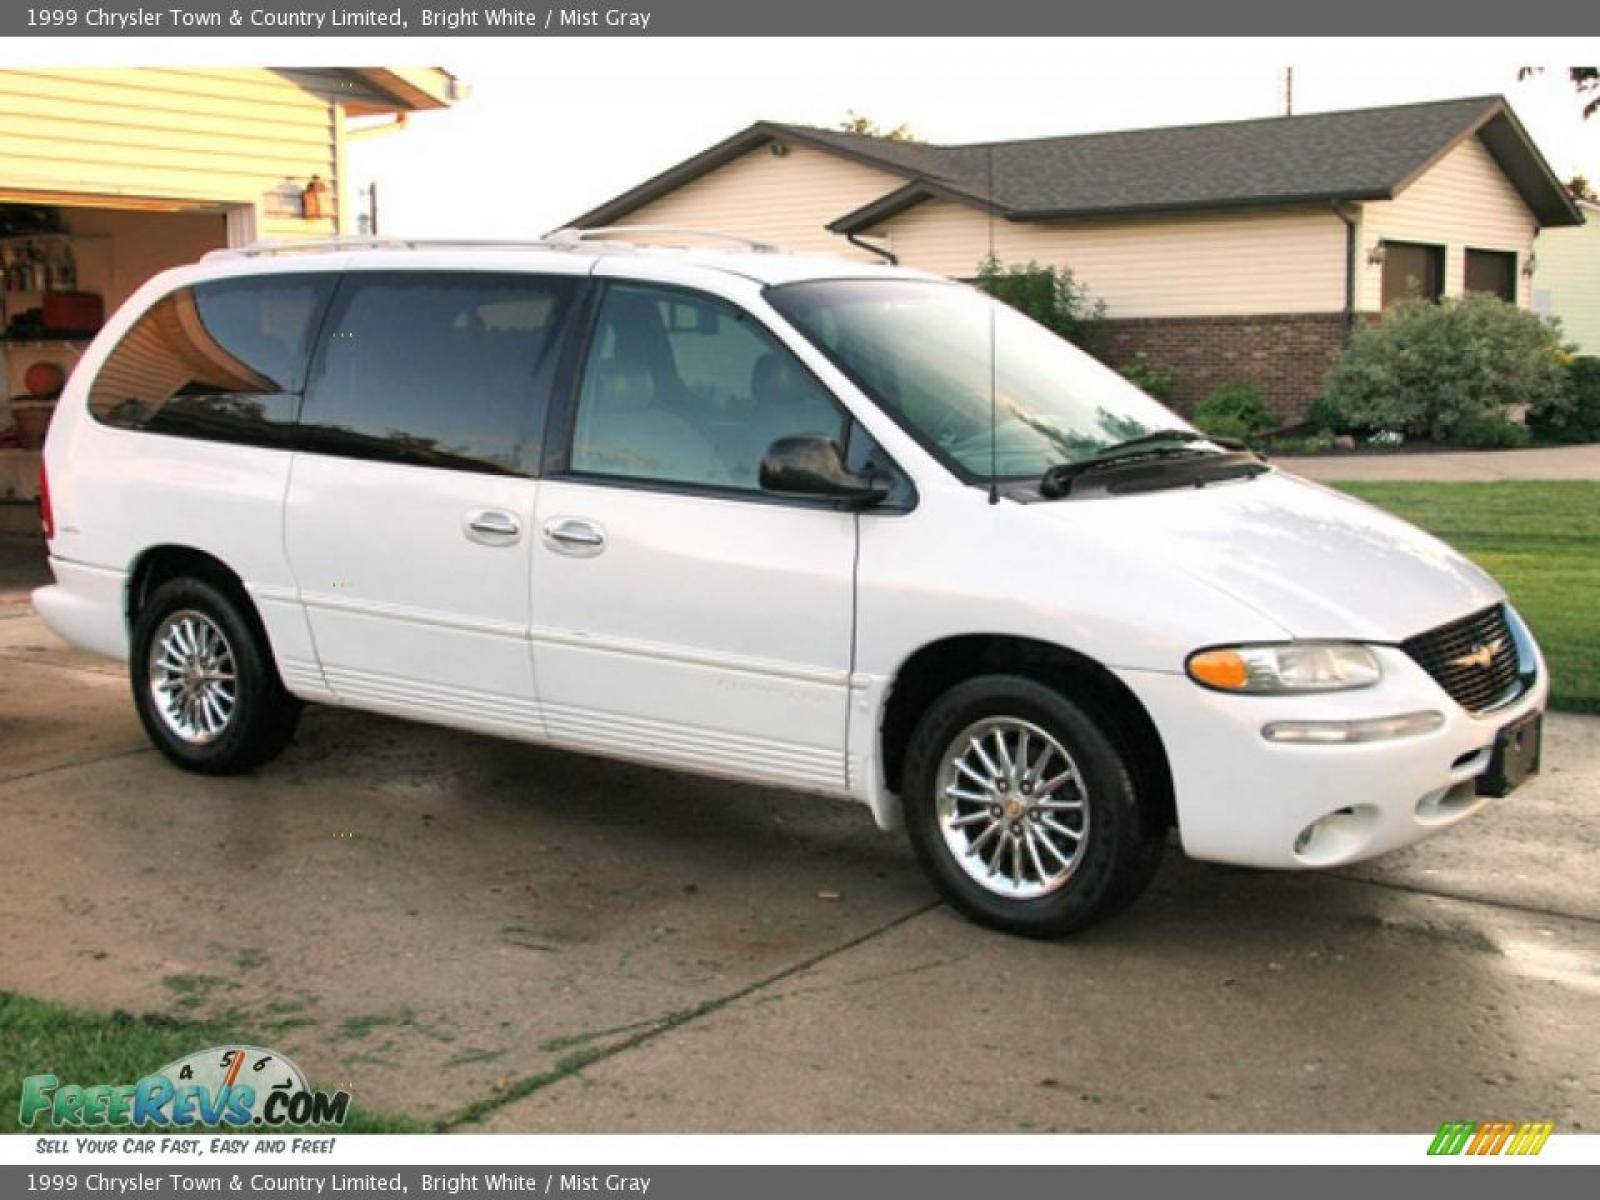 1999 chrysler town and country information and photos neo drive neo drive